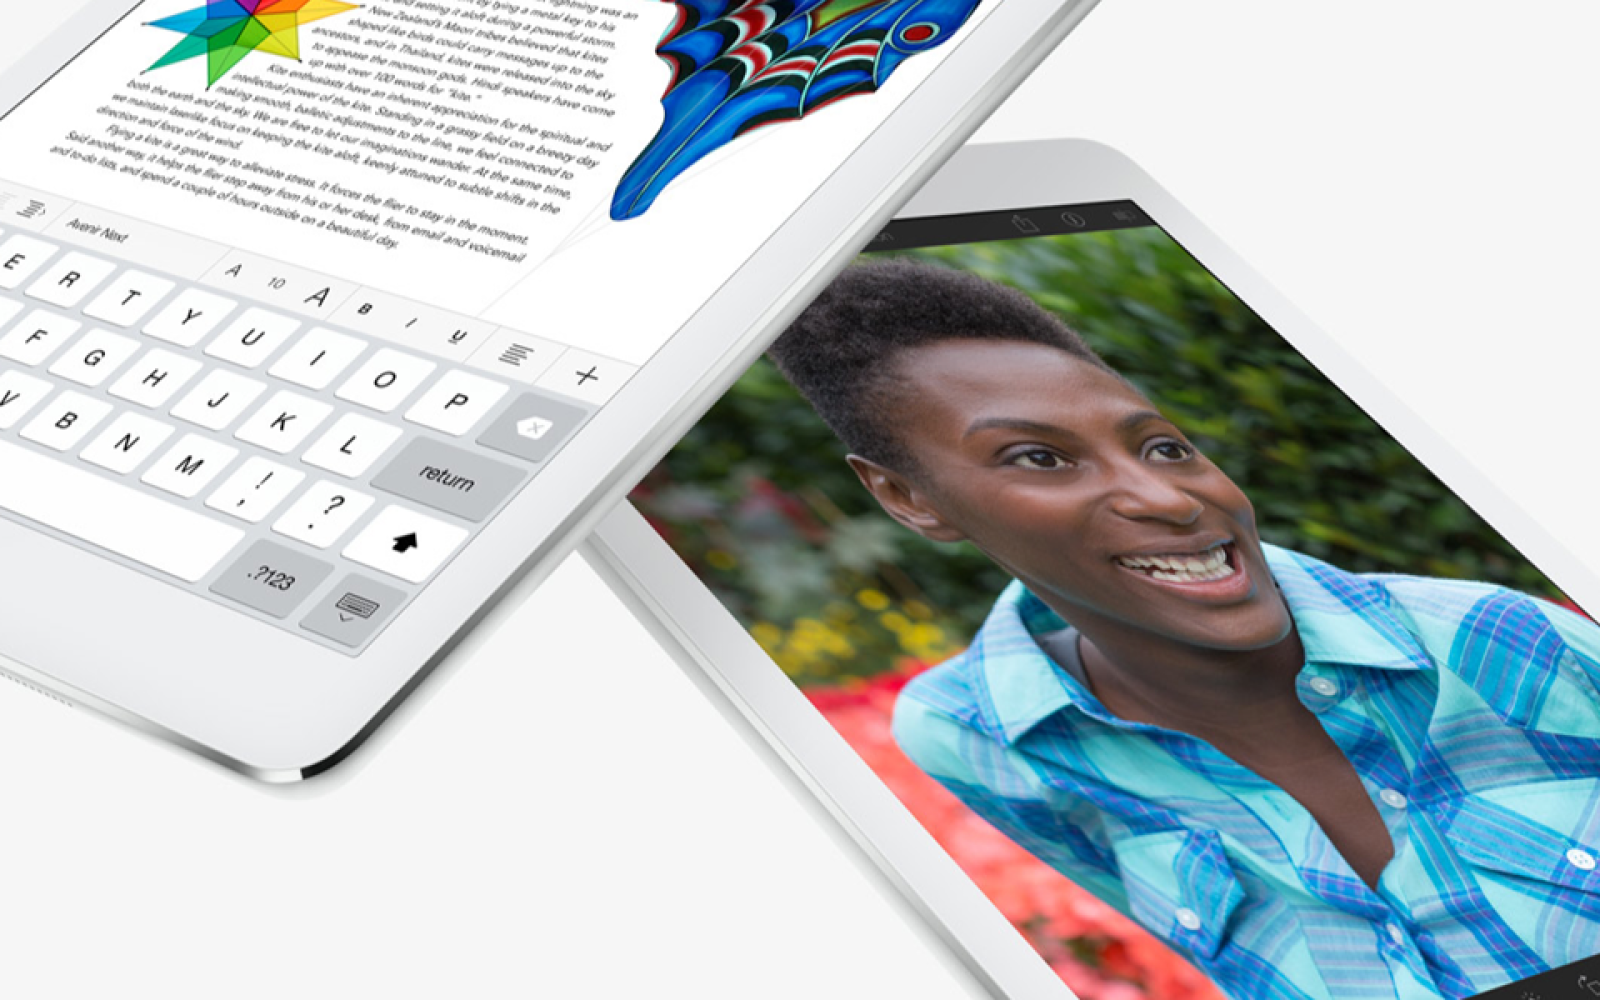 Despite court battles, Apple switches back to Samsung as main iPad display supplier